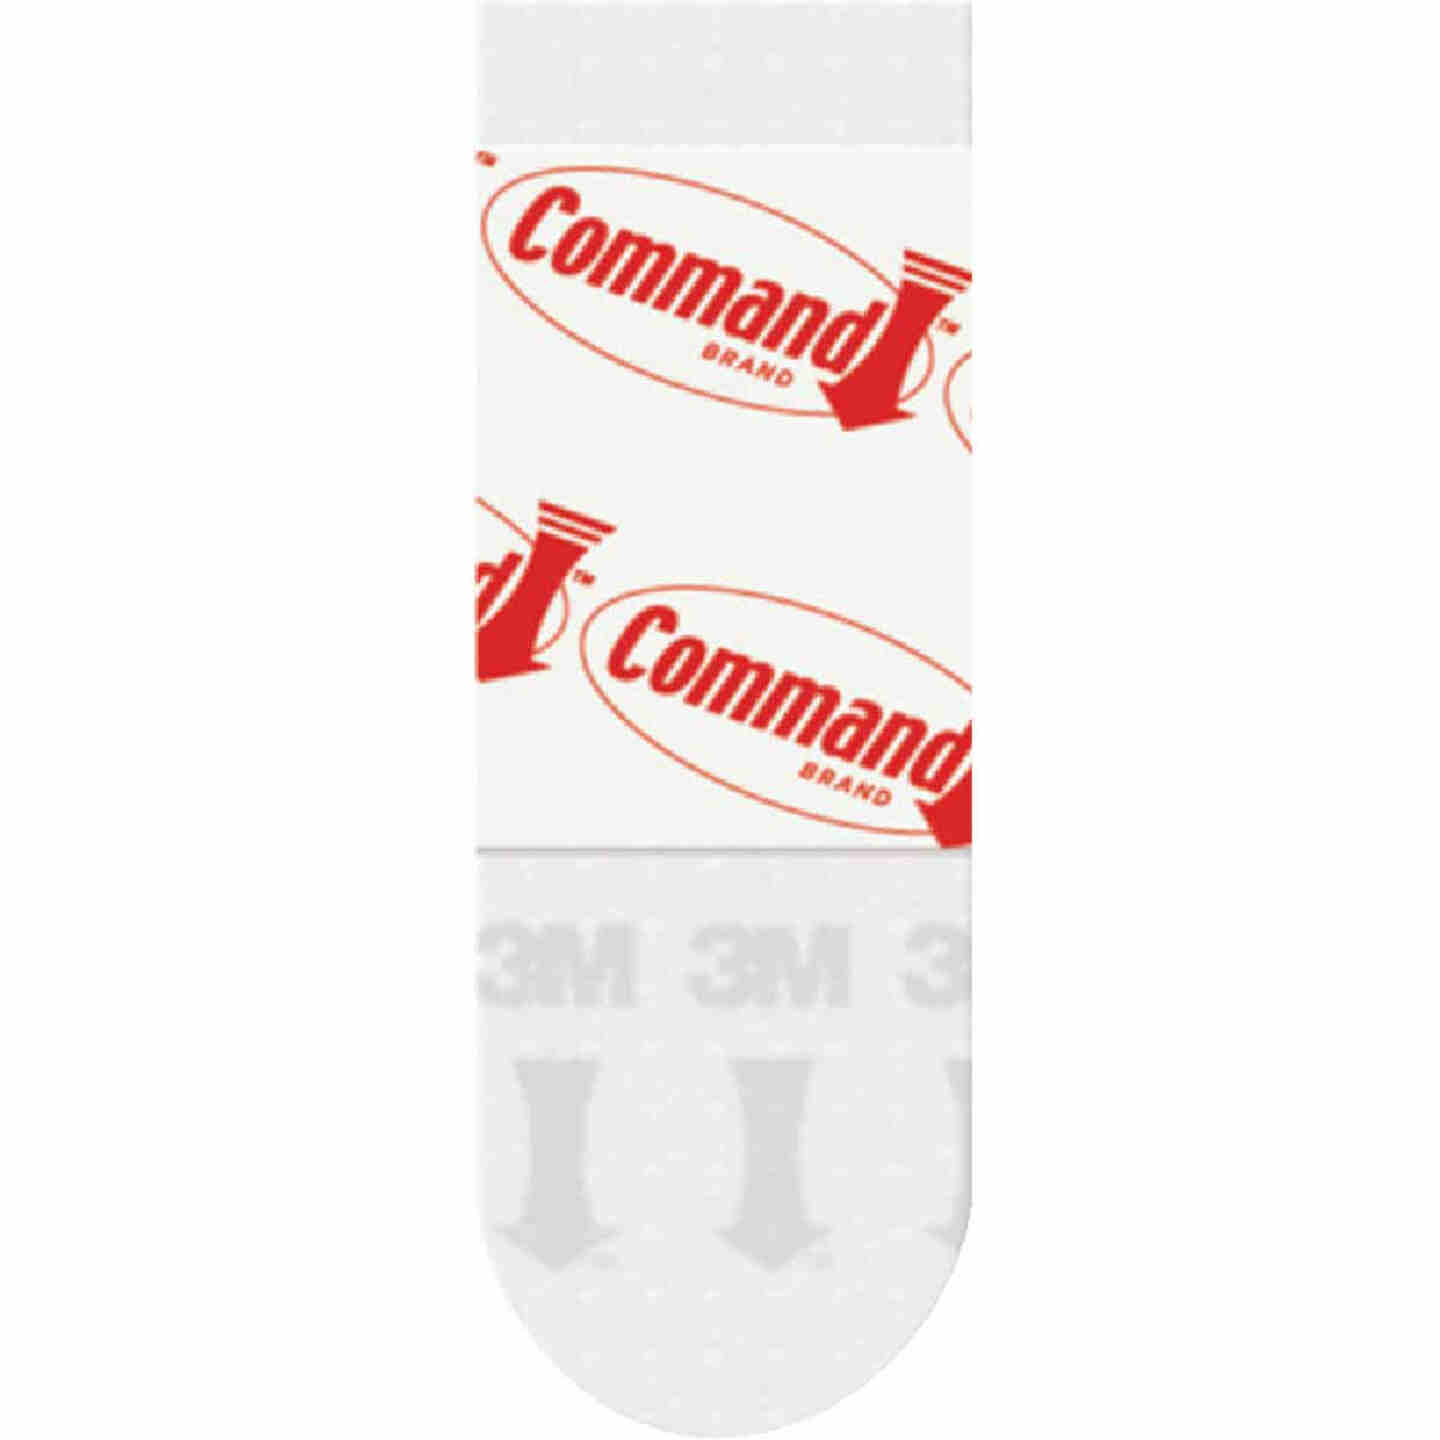 Command White Refill Strip Assortment Image 3